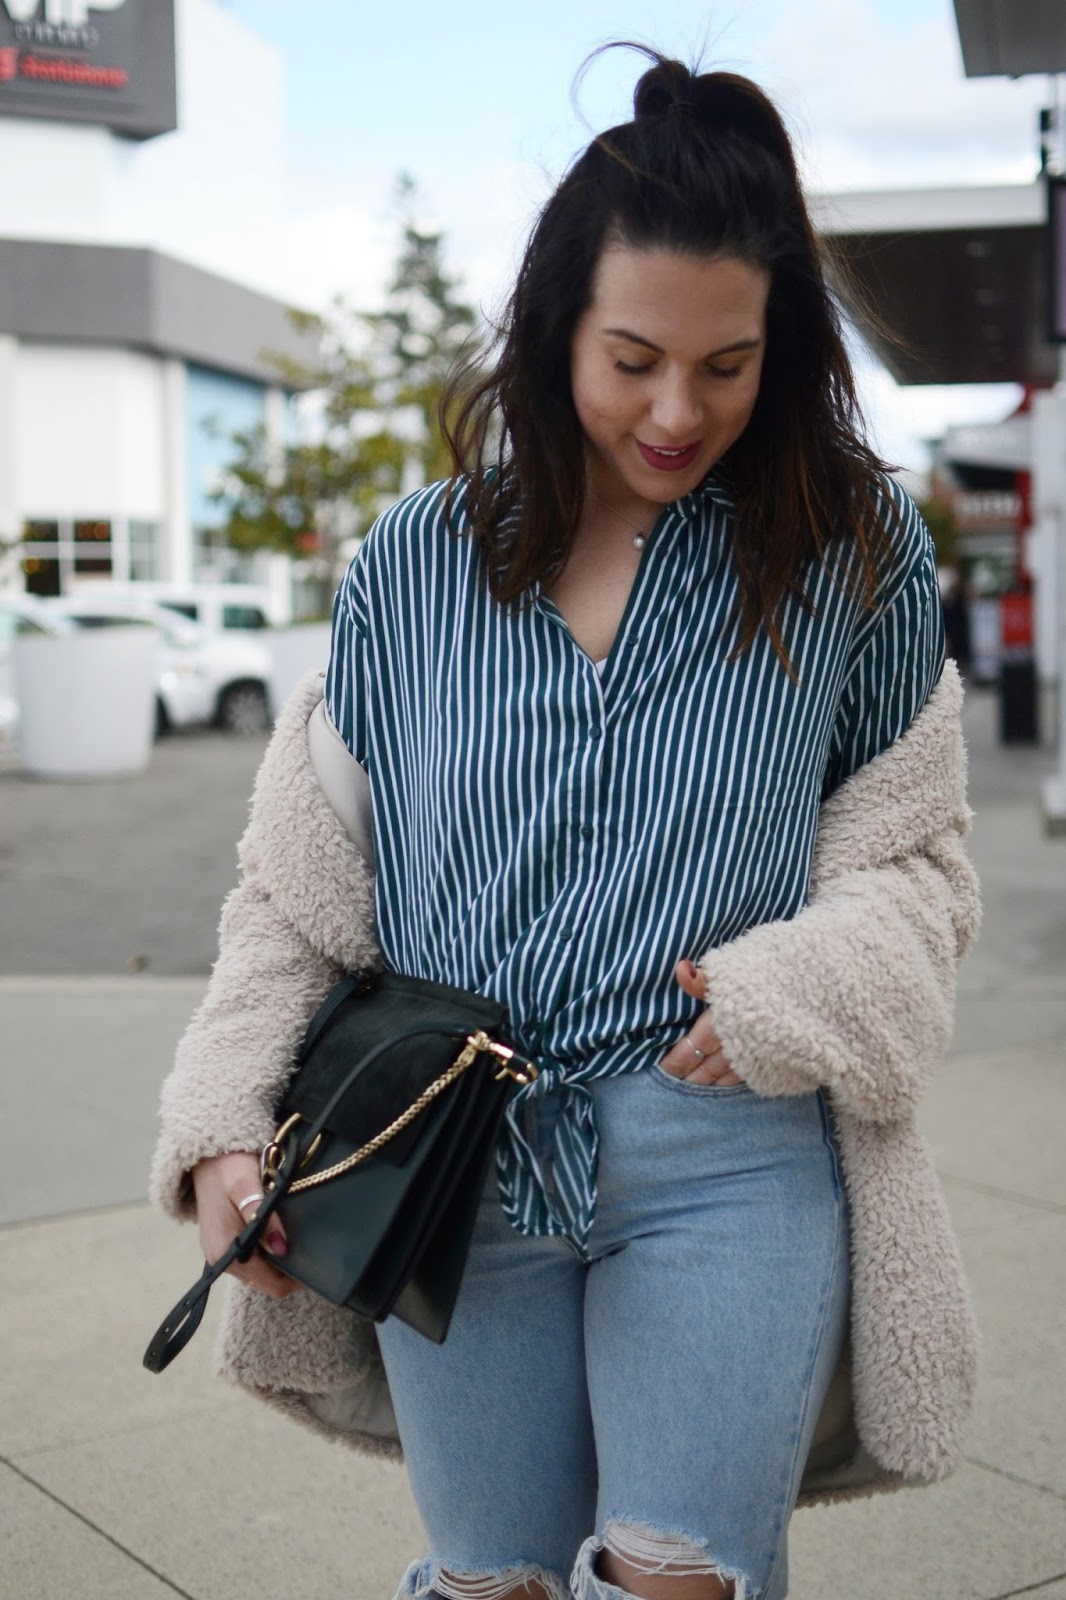 Dynamite striped tie blouse outfit levis wedgie jeans vancouver fashion blogger aleesha harris